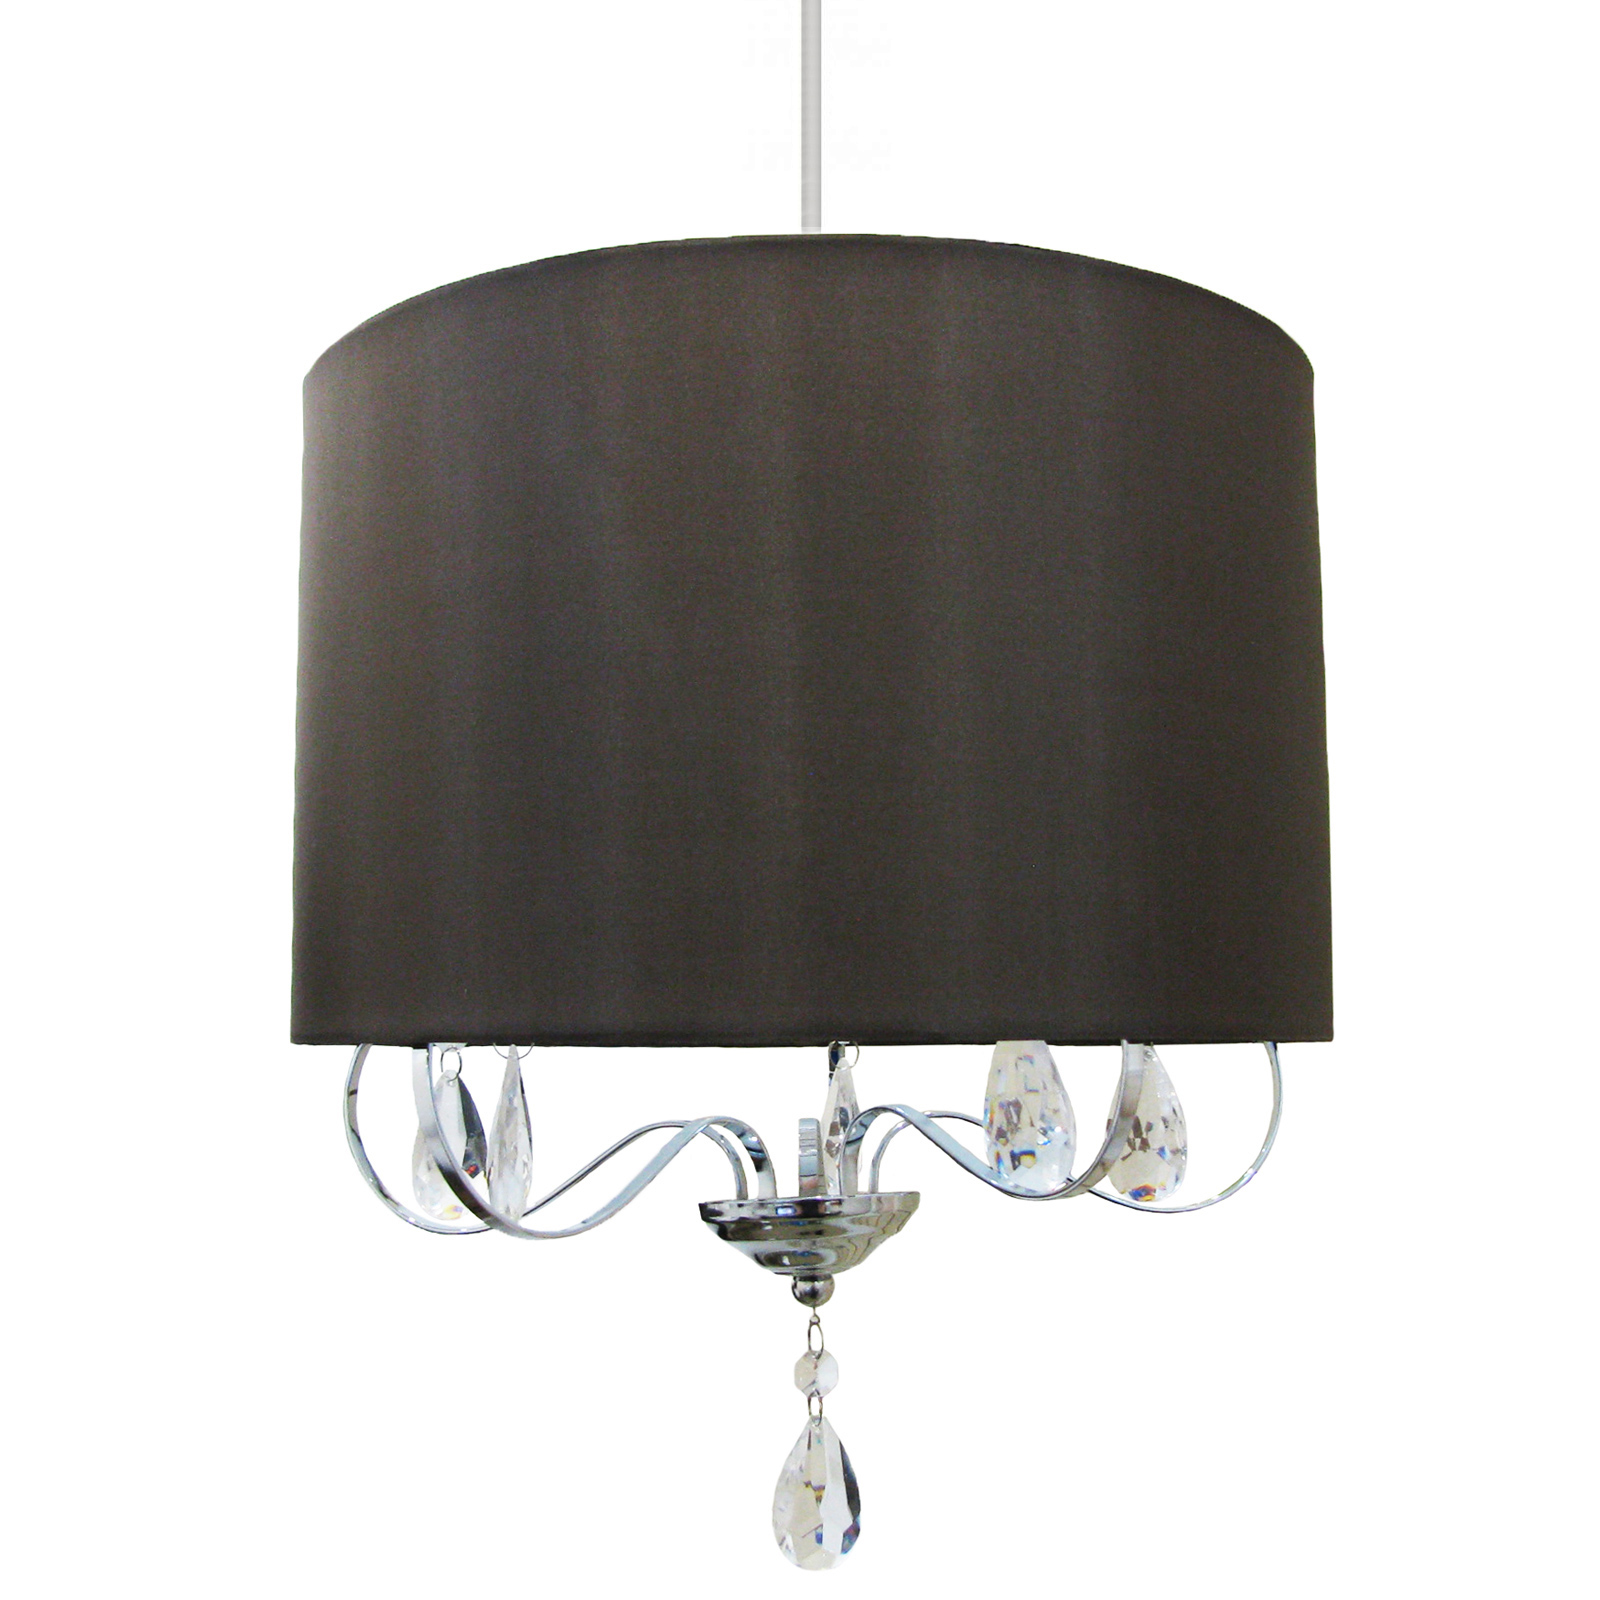 Ceiling Light Shade Argos : Inspire ceiling brown chocolate shadelier lampshade